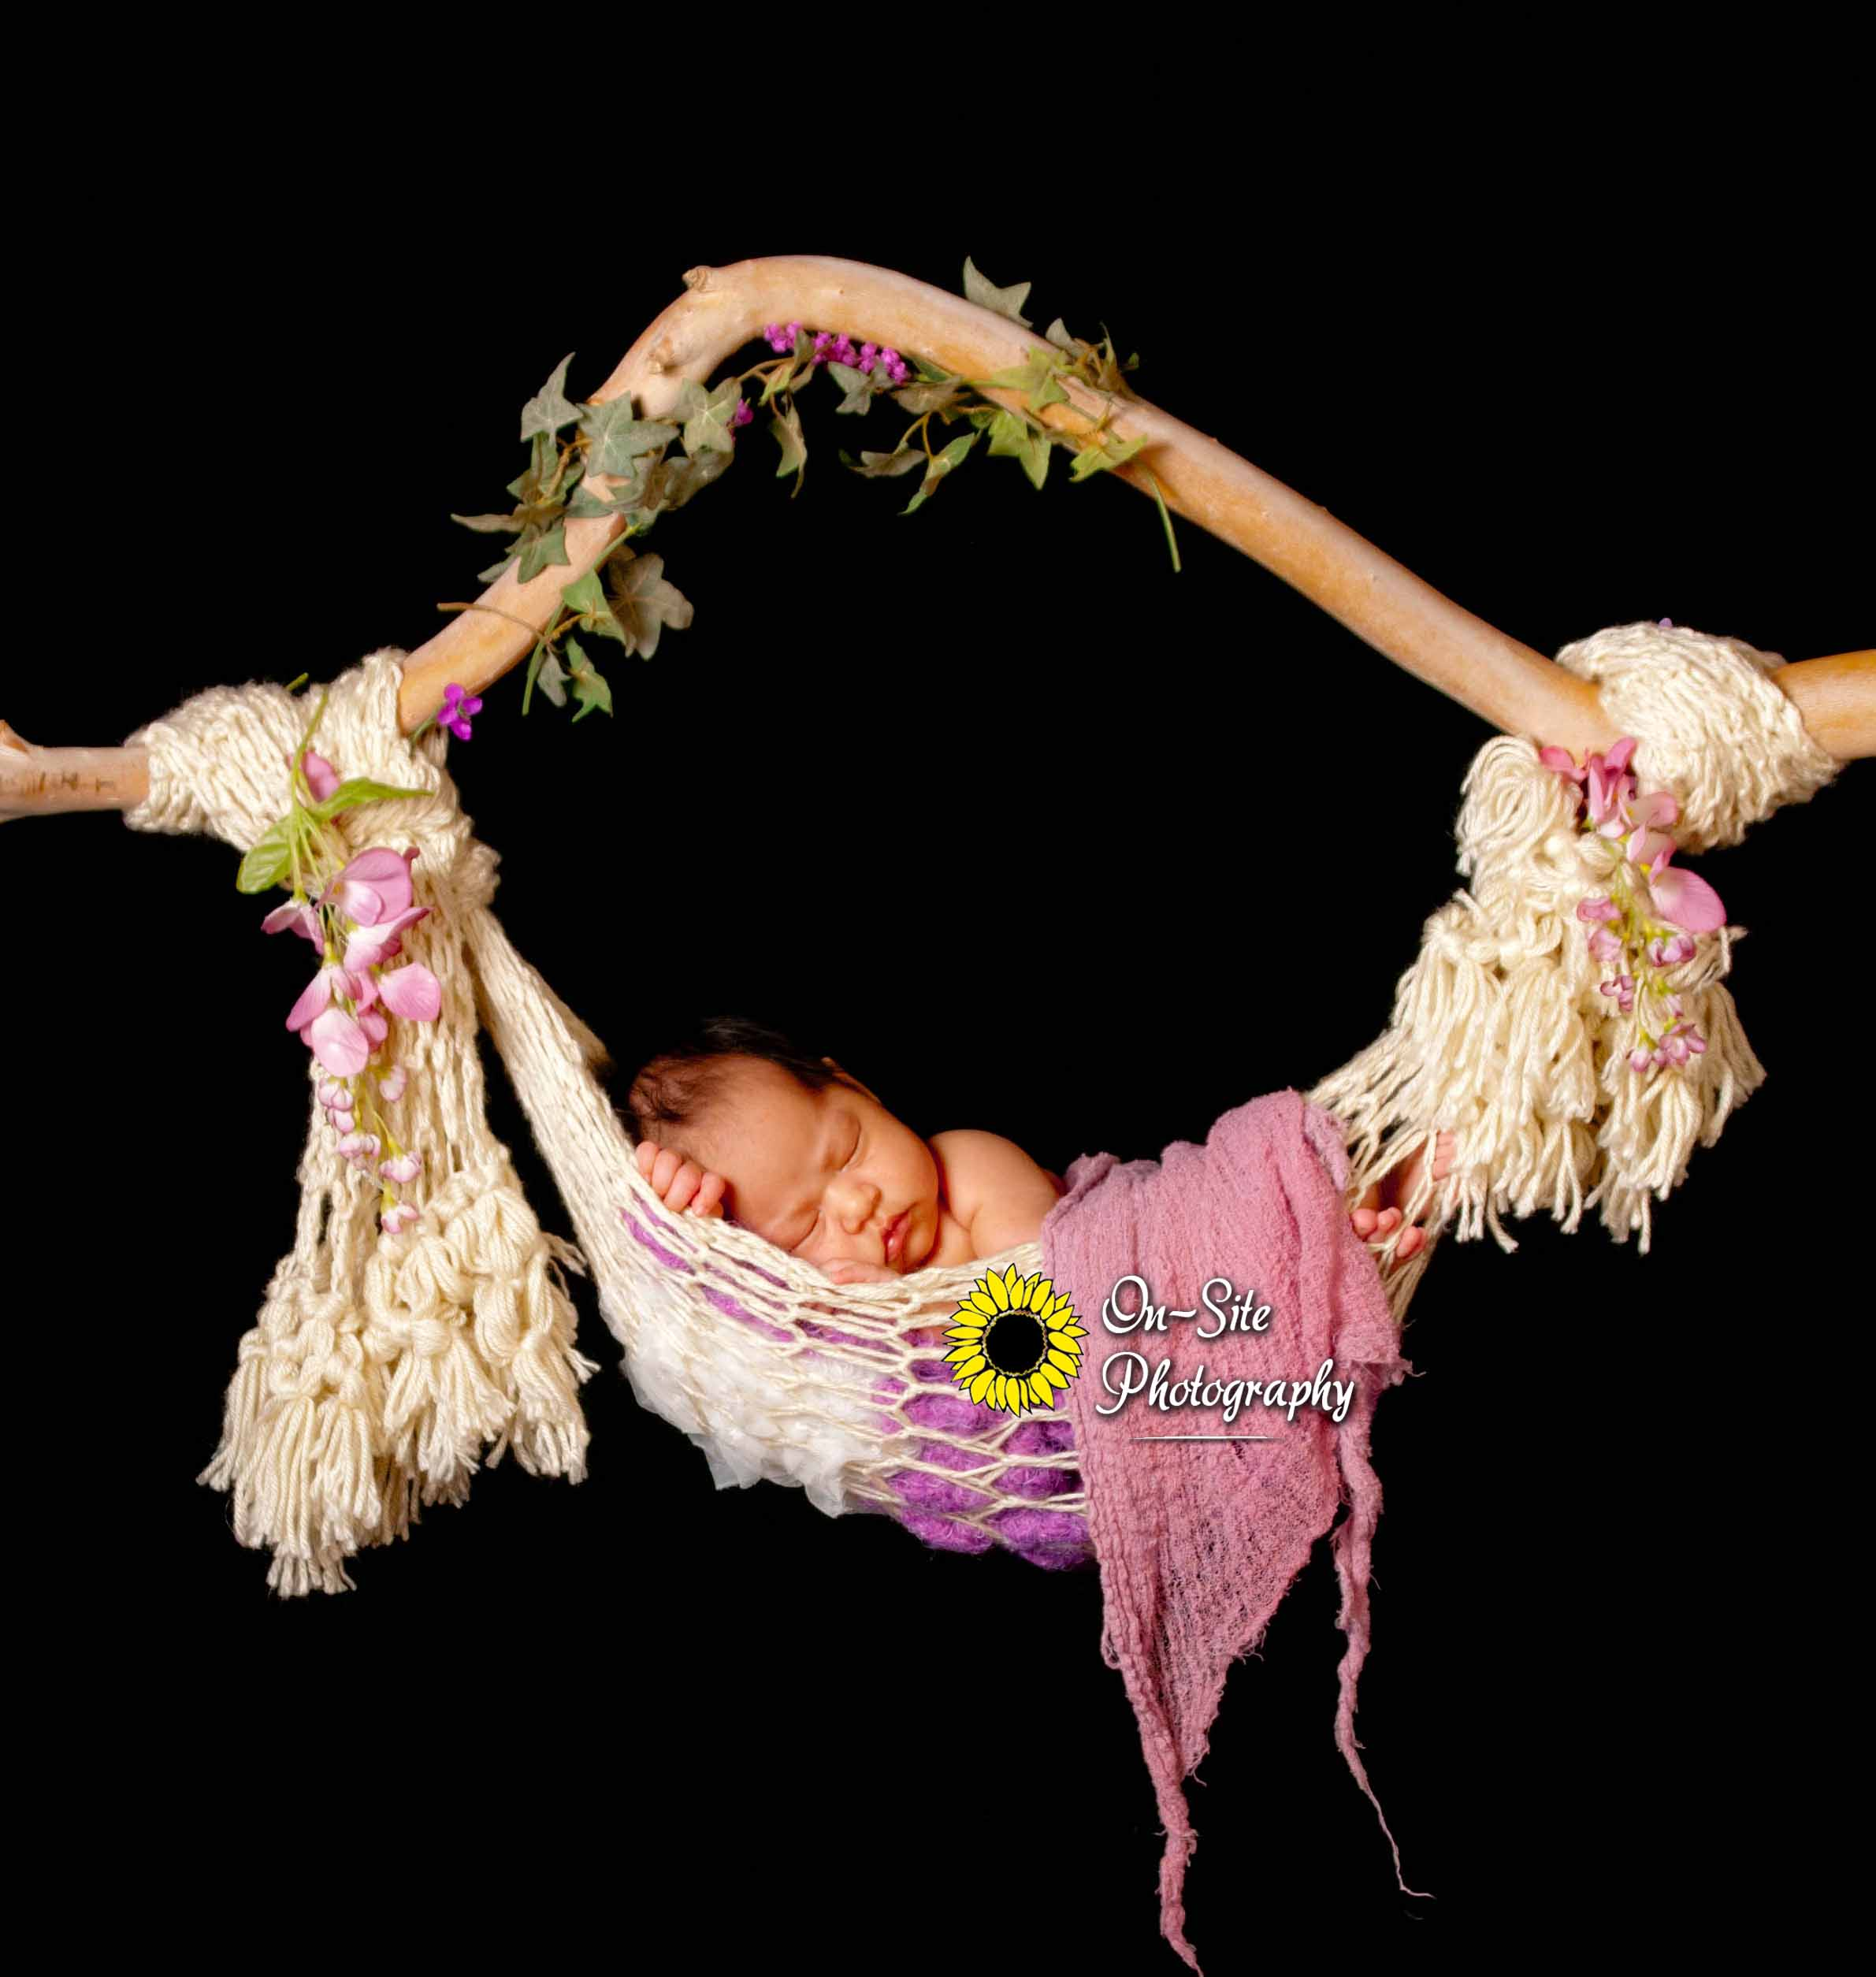 adorable baby hammock pose, cutest newborn baby girl in hammock, newborn images,on-site photography